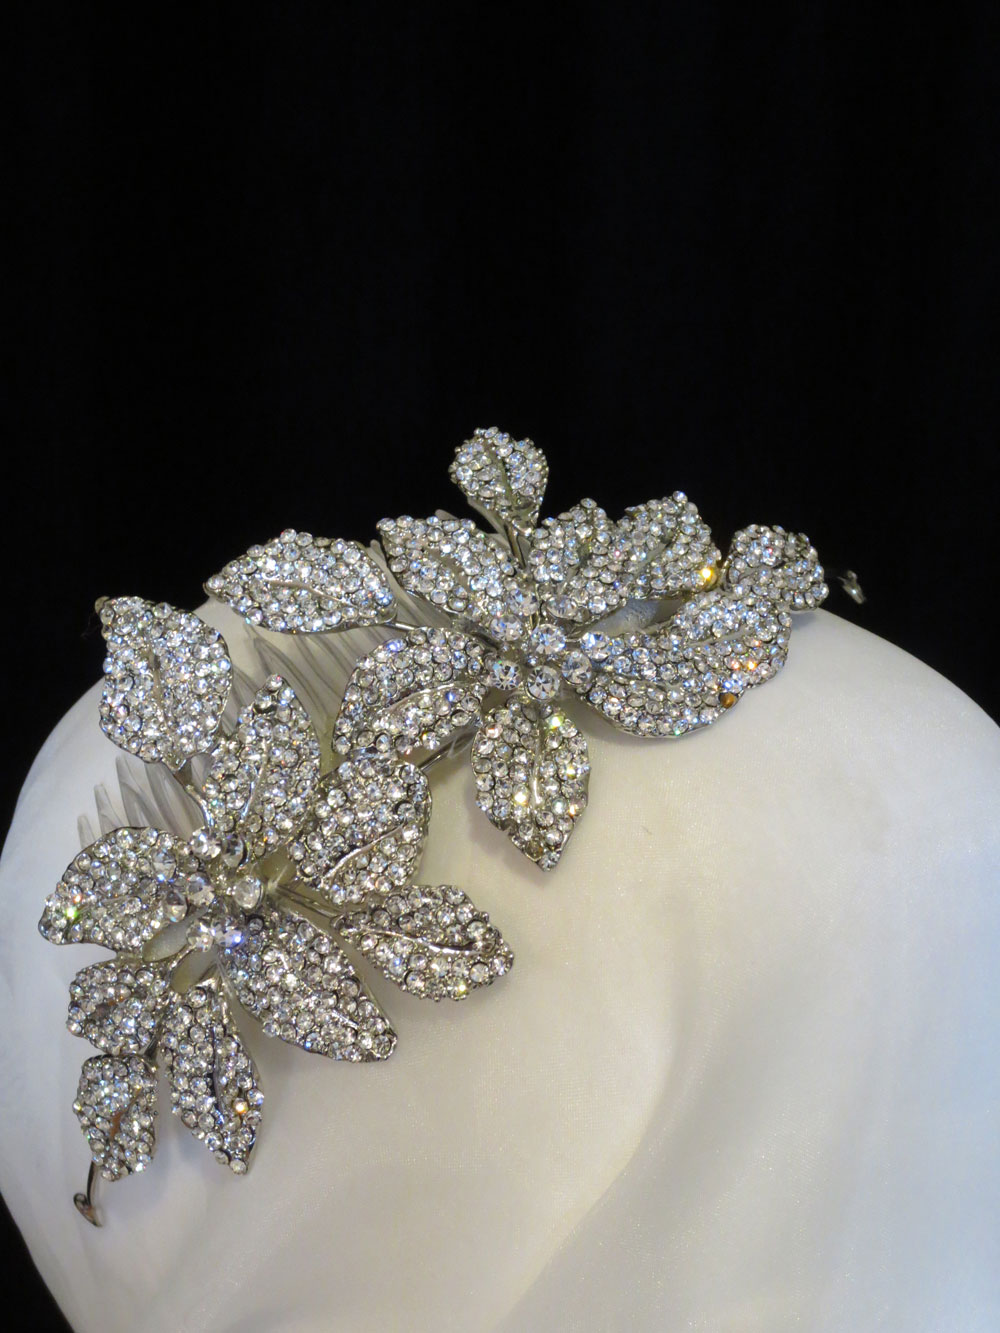 John-Zimmerman-Couture-Headpieces-and-Tiaras-Model-Pretty-Gallery-Image-1